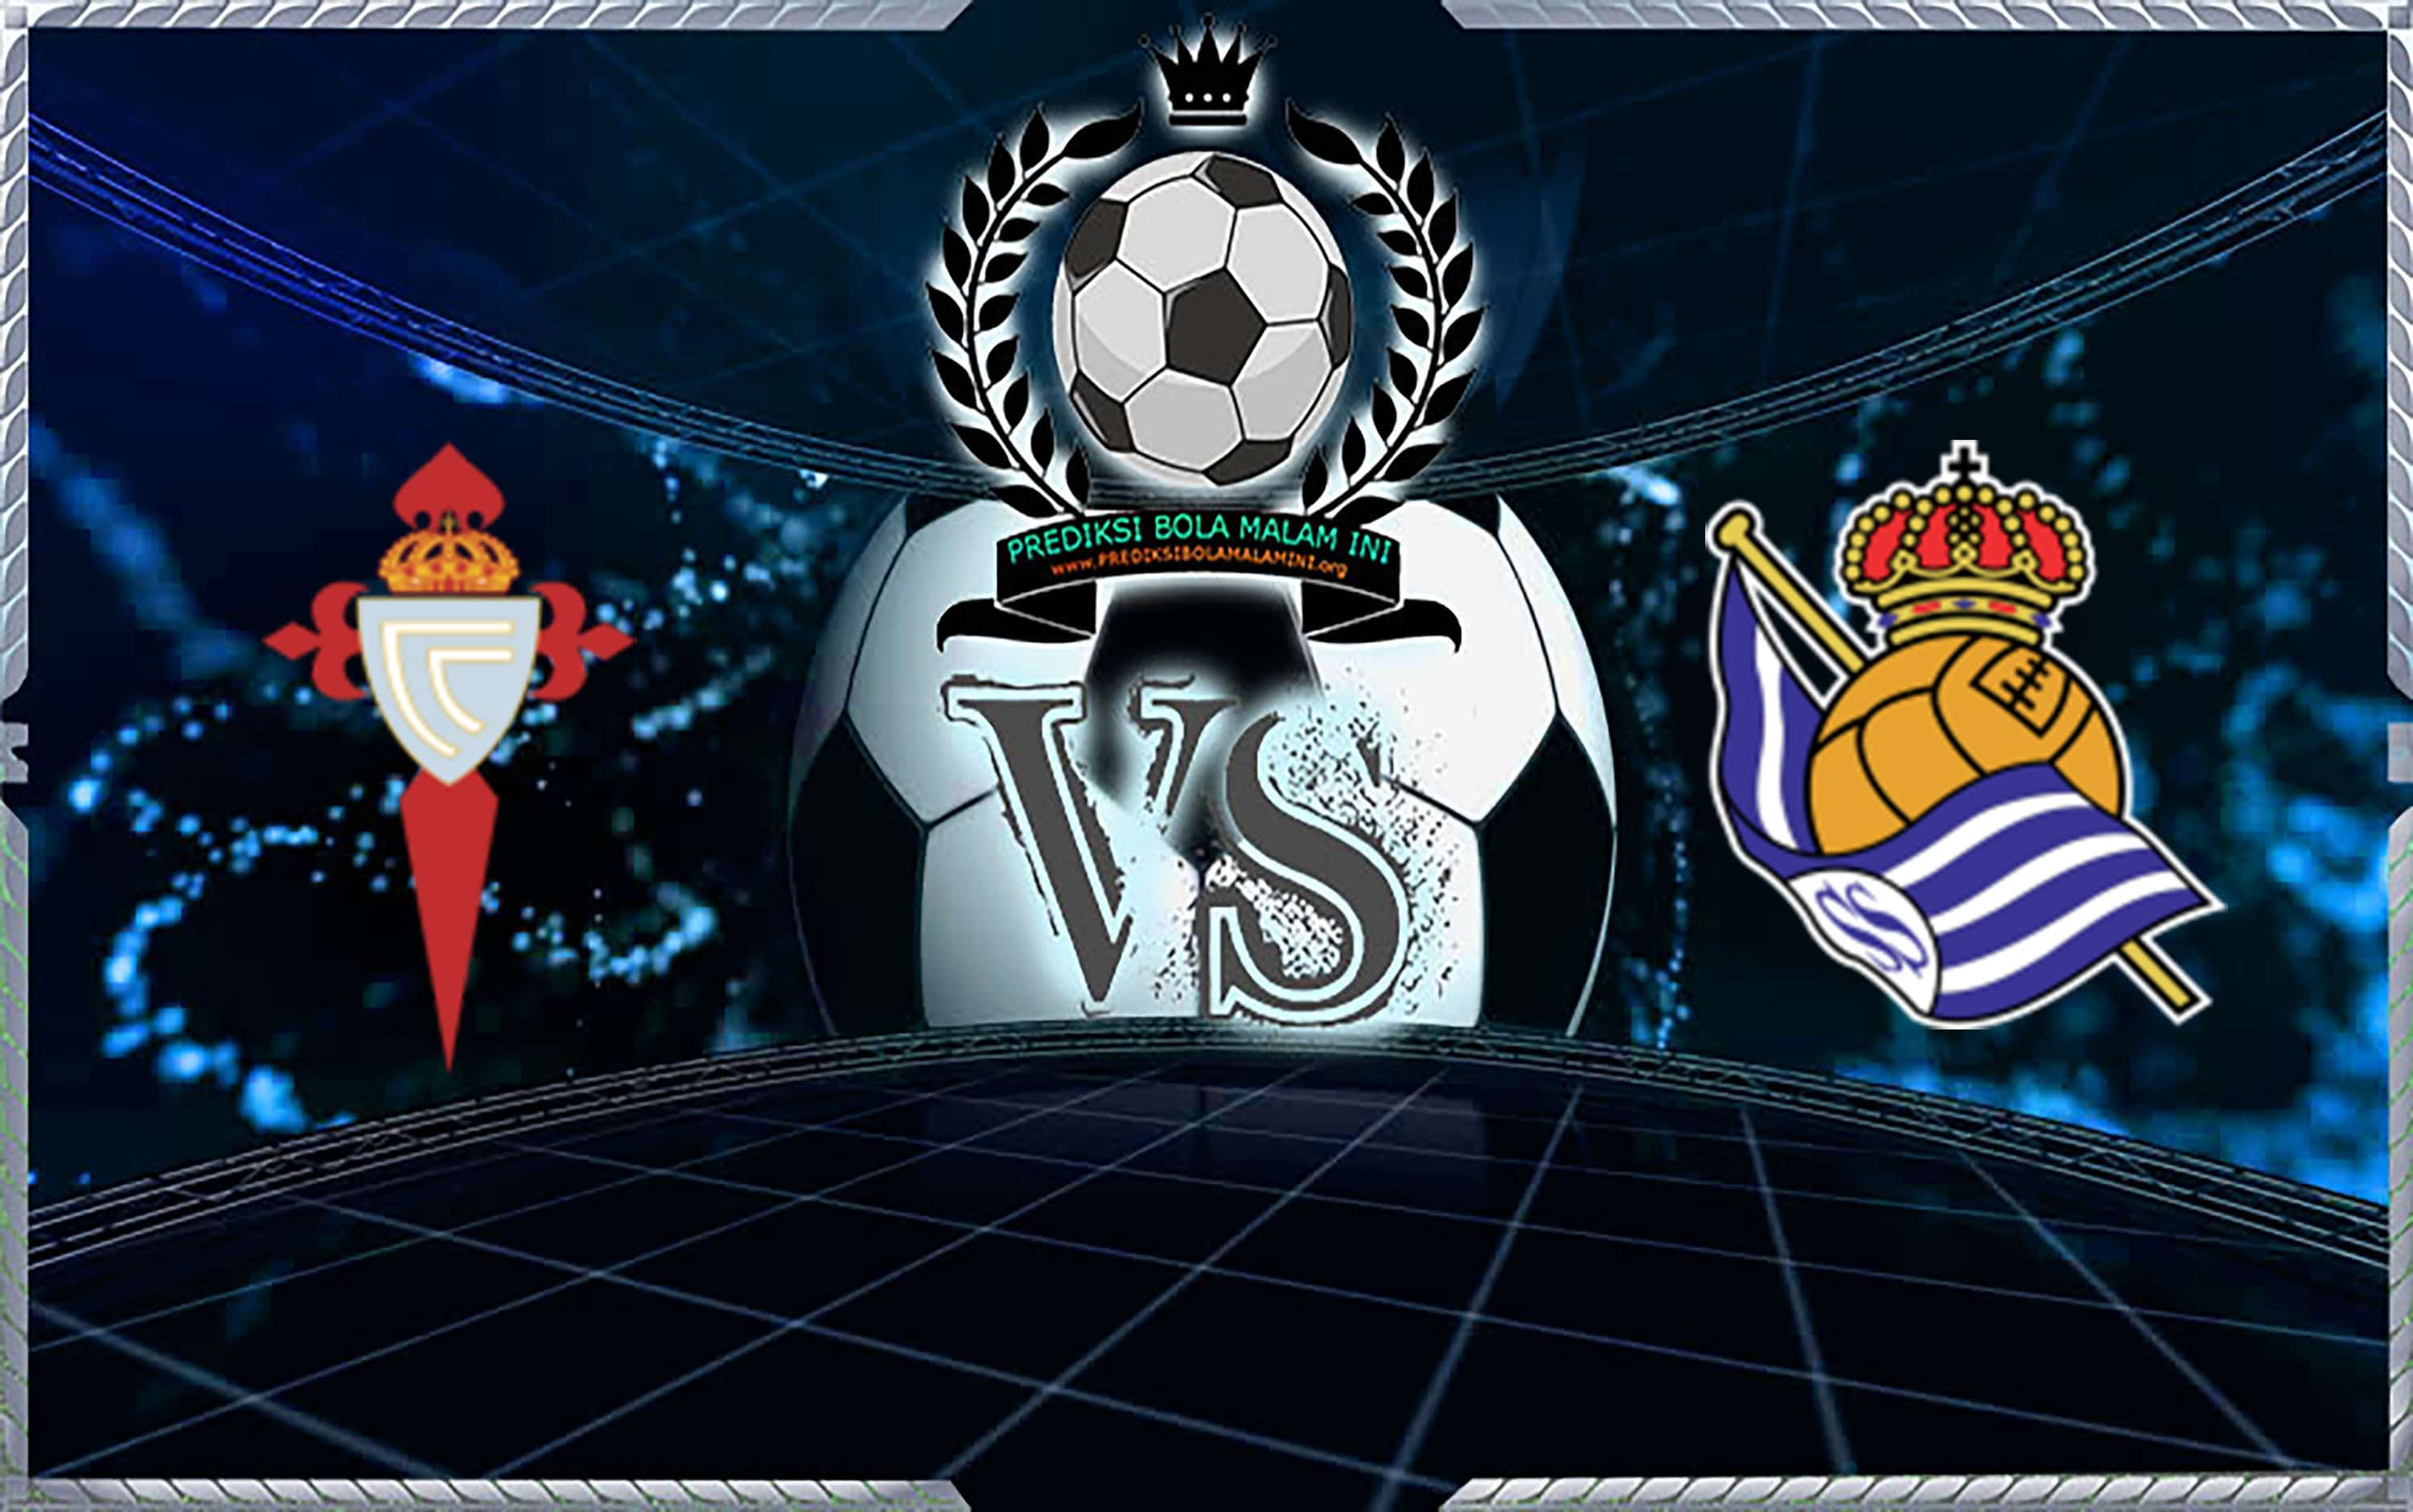 Prediksi Skor Celta de vigo Vs Real sociedad 7 April 2019 &quot;width =&quot; 640 &quot;height =&quot; 401 &quot;/&gt; </p> <p> <span style=